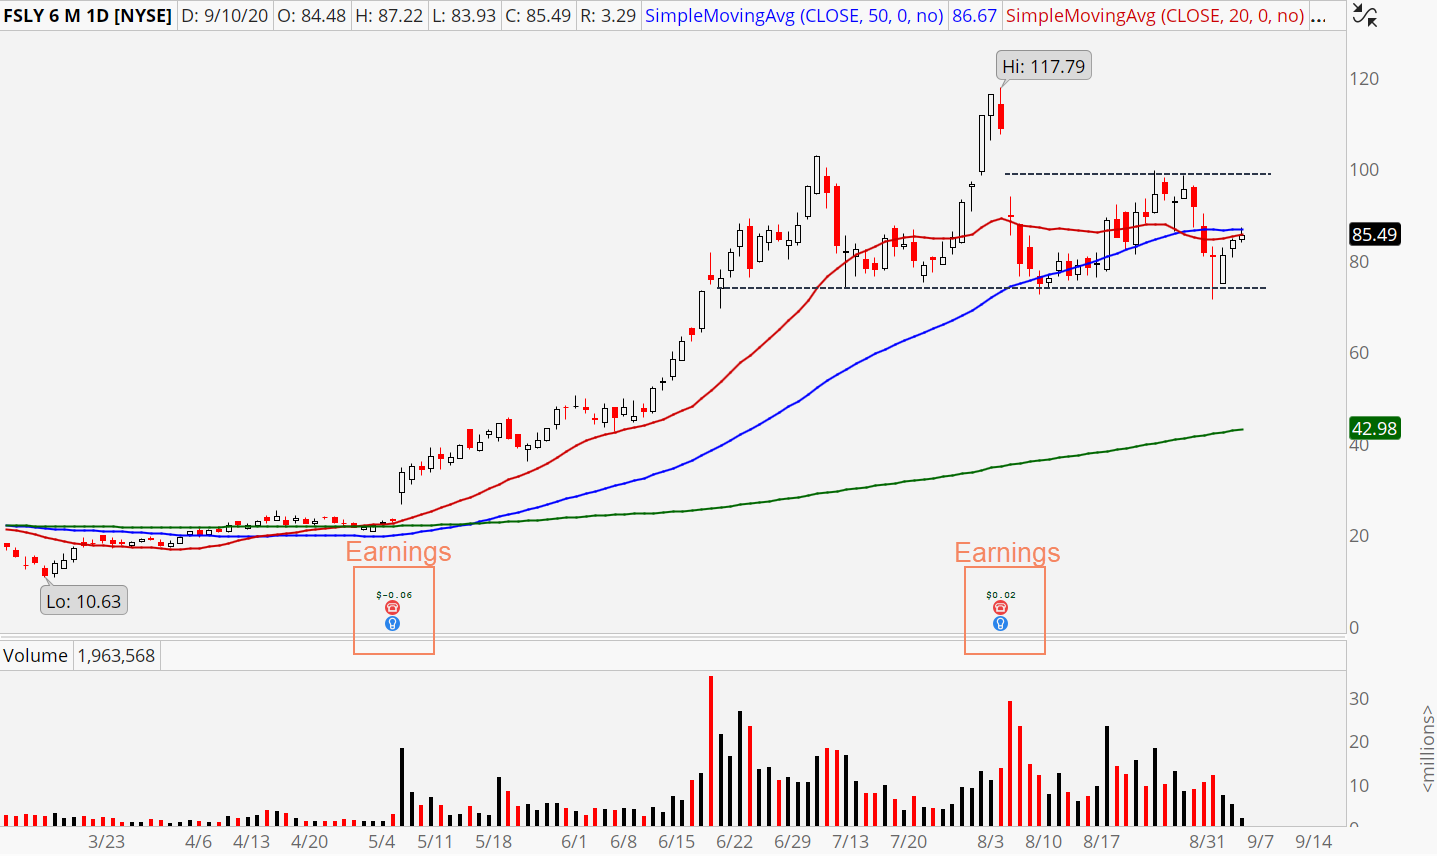 Fastly (FSLY) stock chart showing trading range